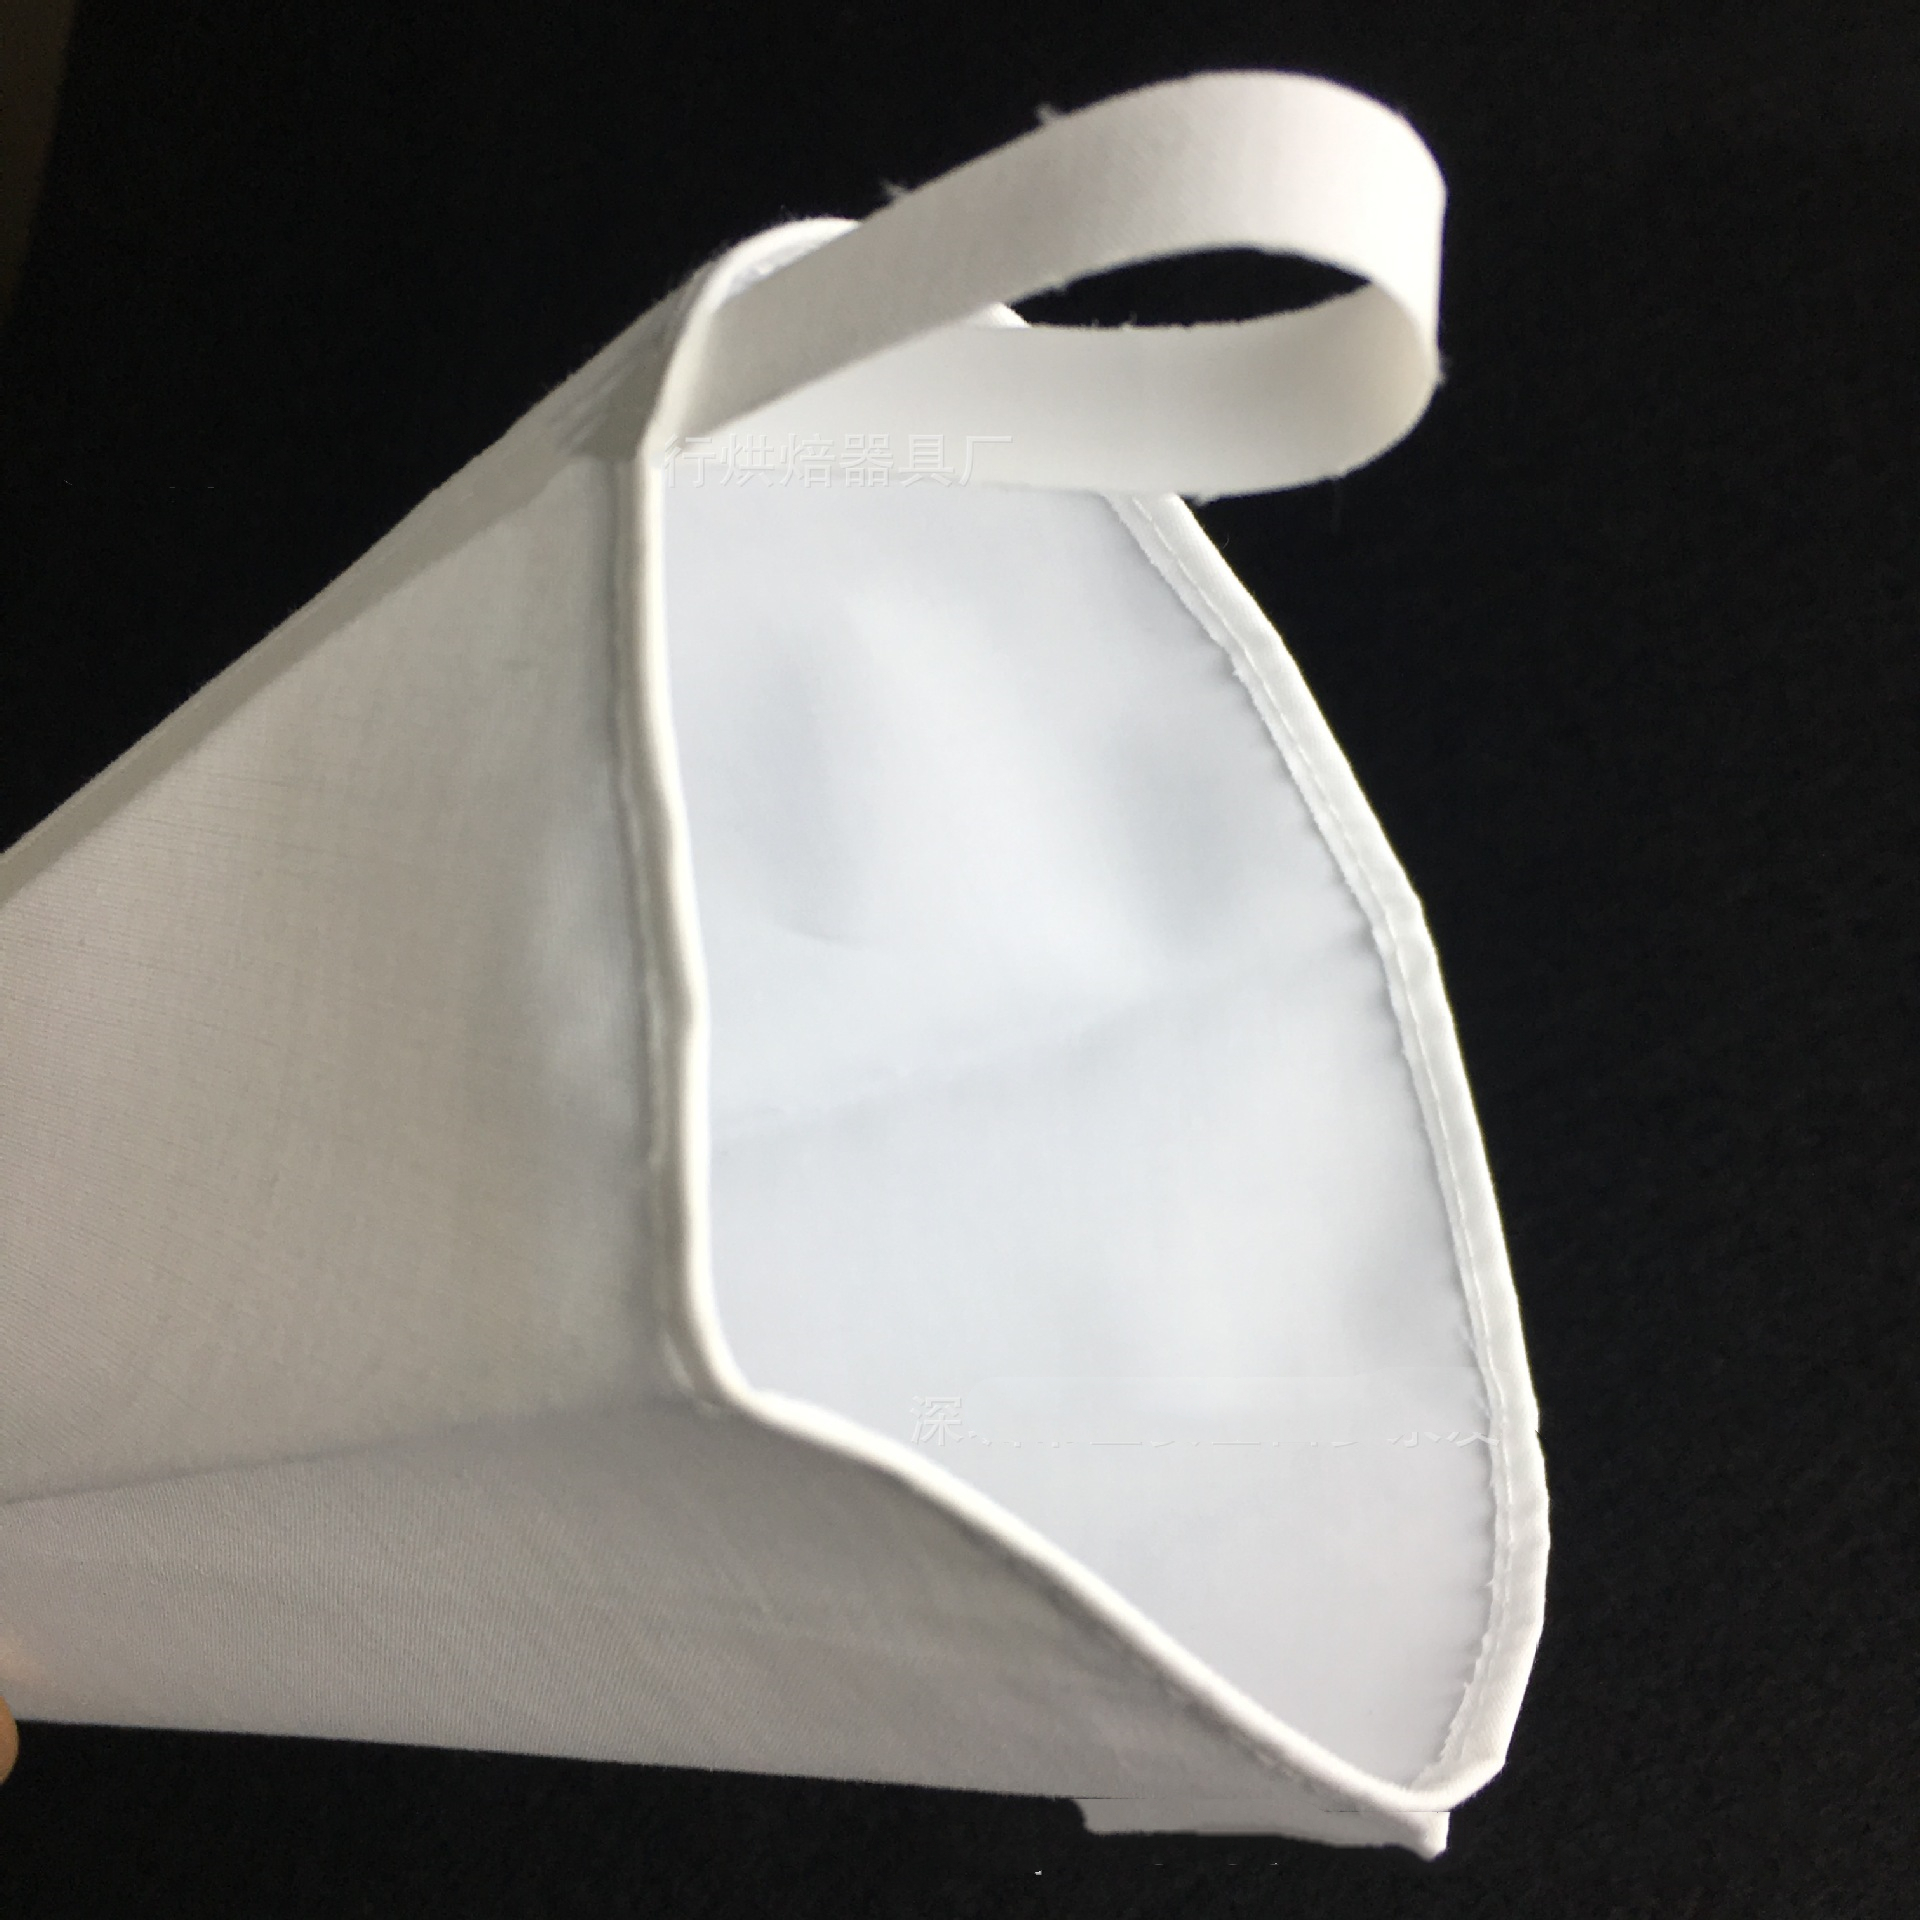 3 Sizes 100% Cotton Icing Piping Cream Pastry Bag Cake Bag Tools DIY Baking Kitchen Accessories Drop Shipping